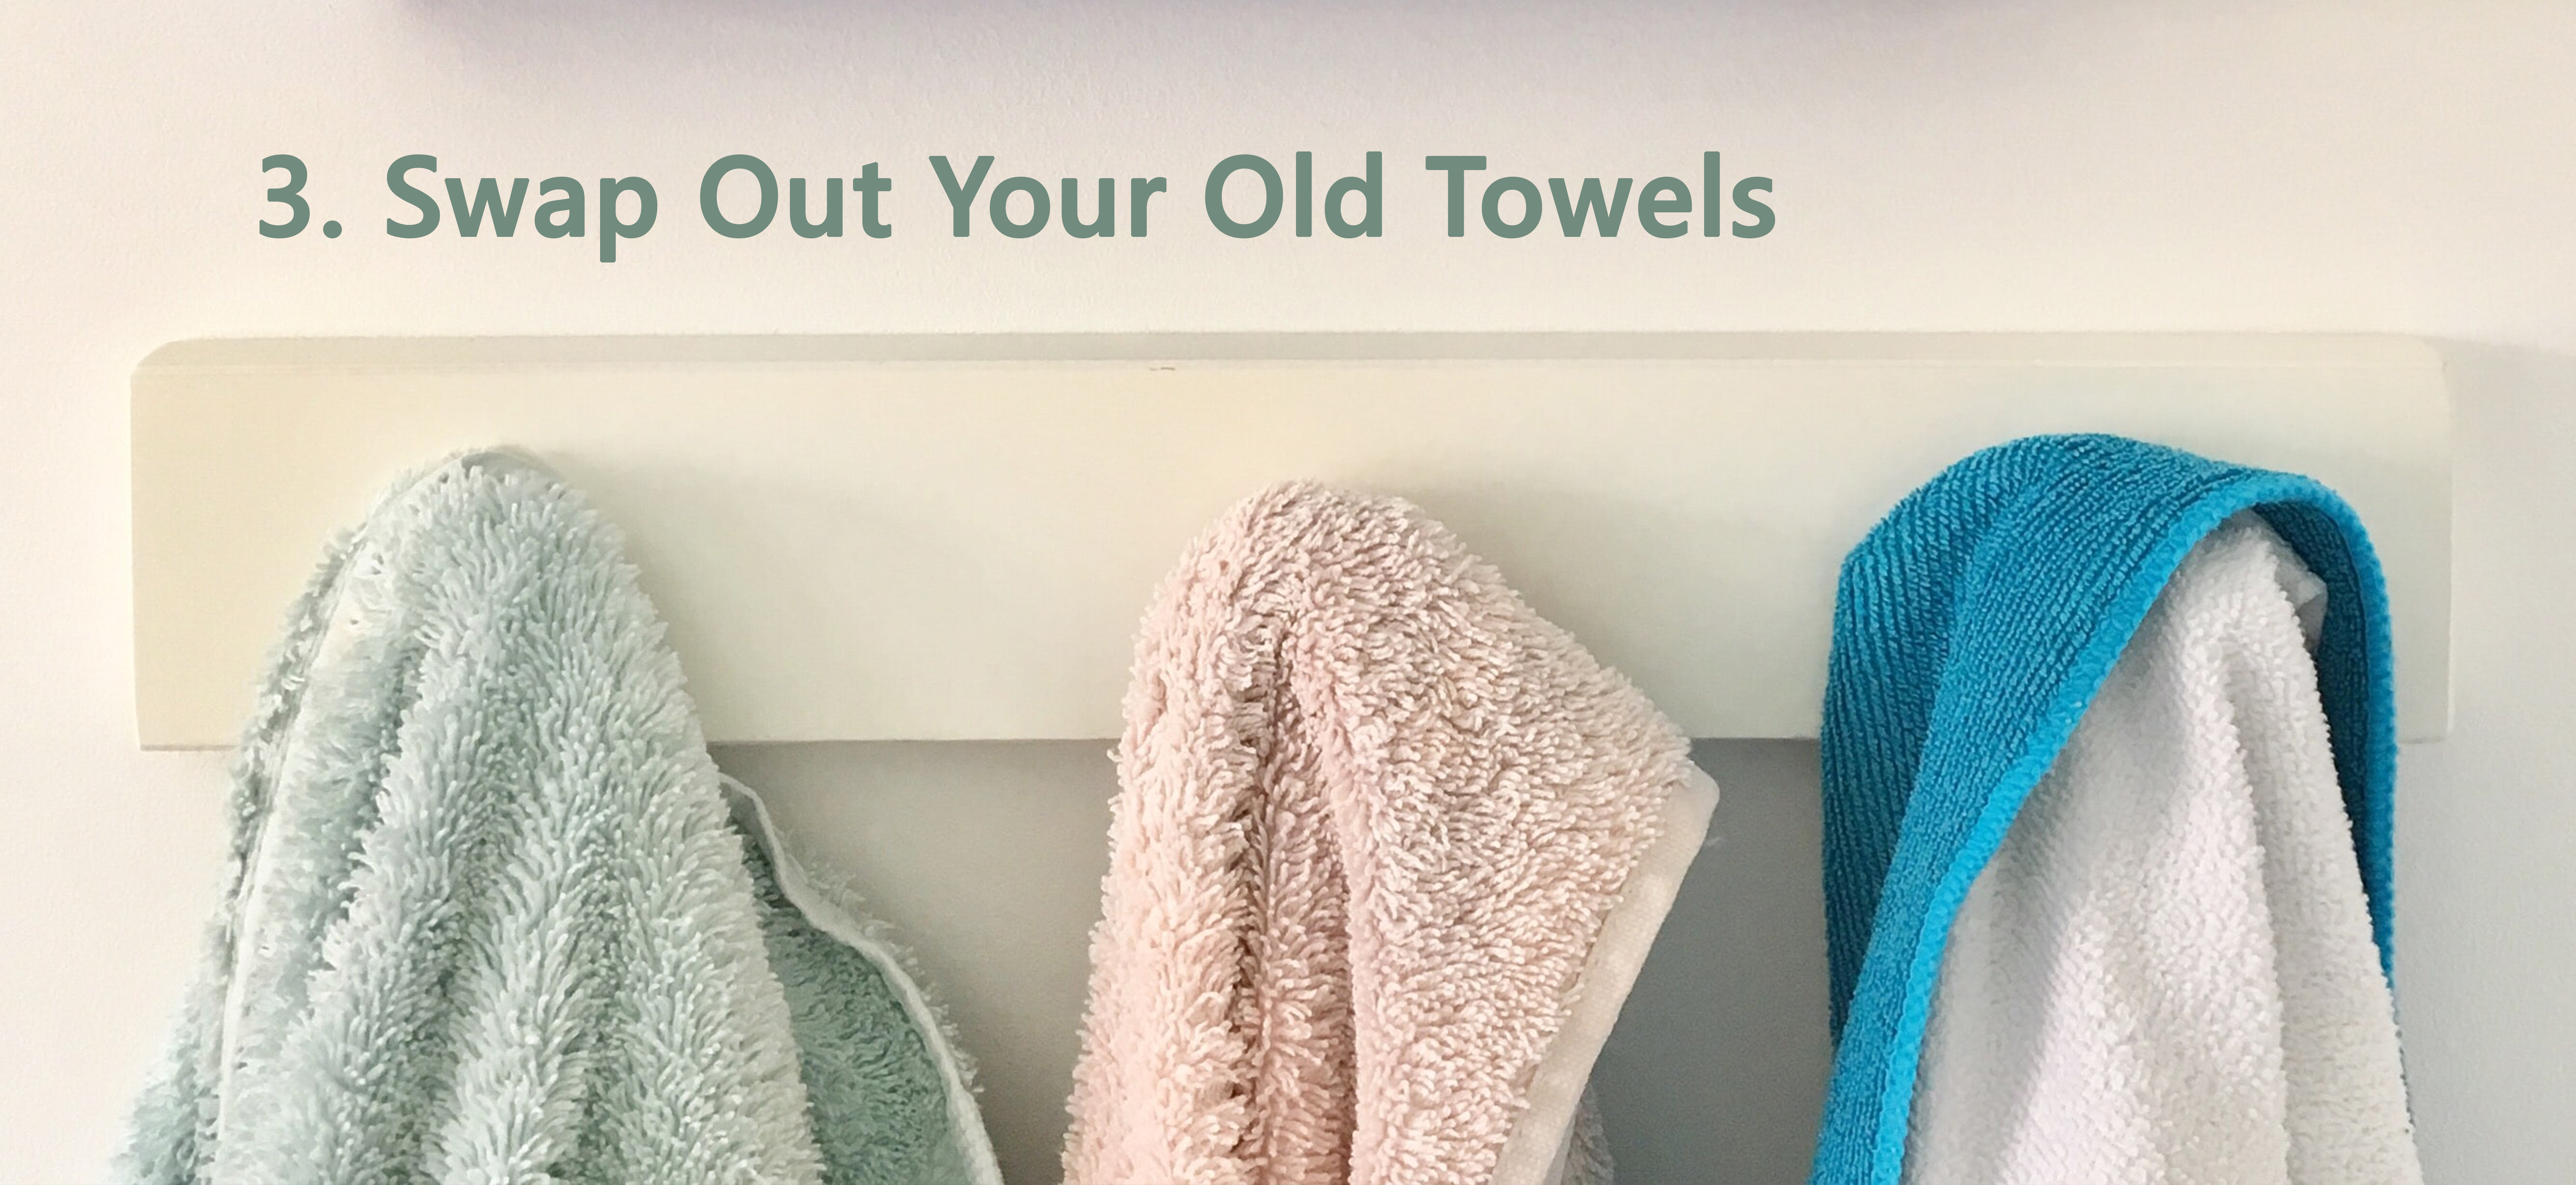 fontaineind-fontaine-towels